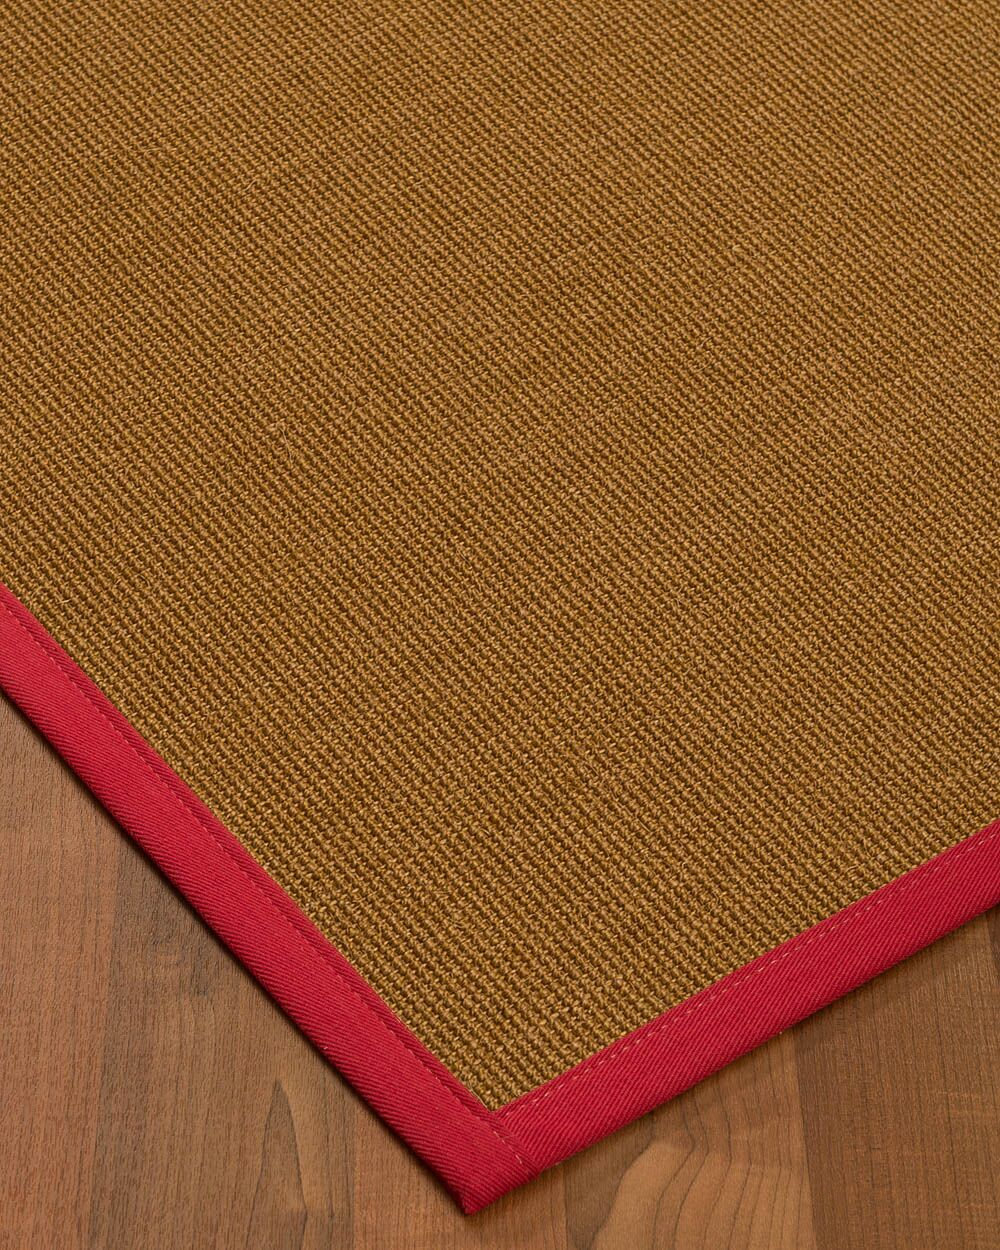 Antonina Border Hand-Woven Brown/Red Area Rug Rug Size: Rectangle 8' x 10', Rug Pad Included: Yes